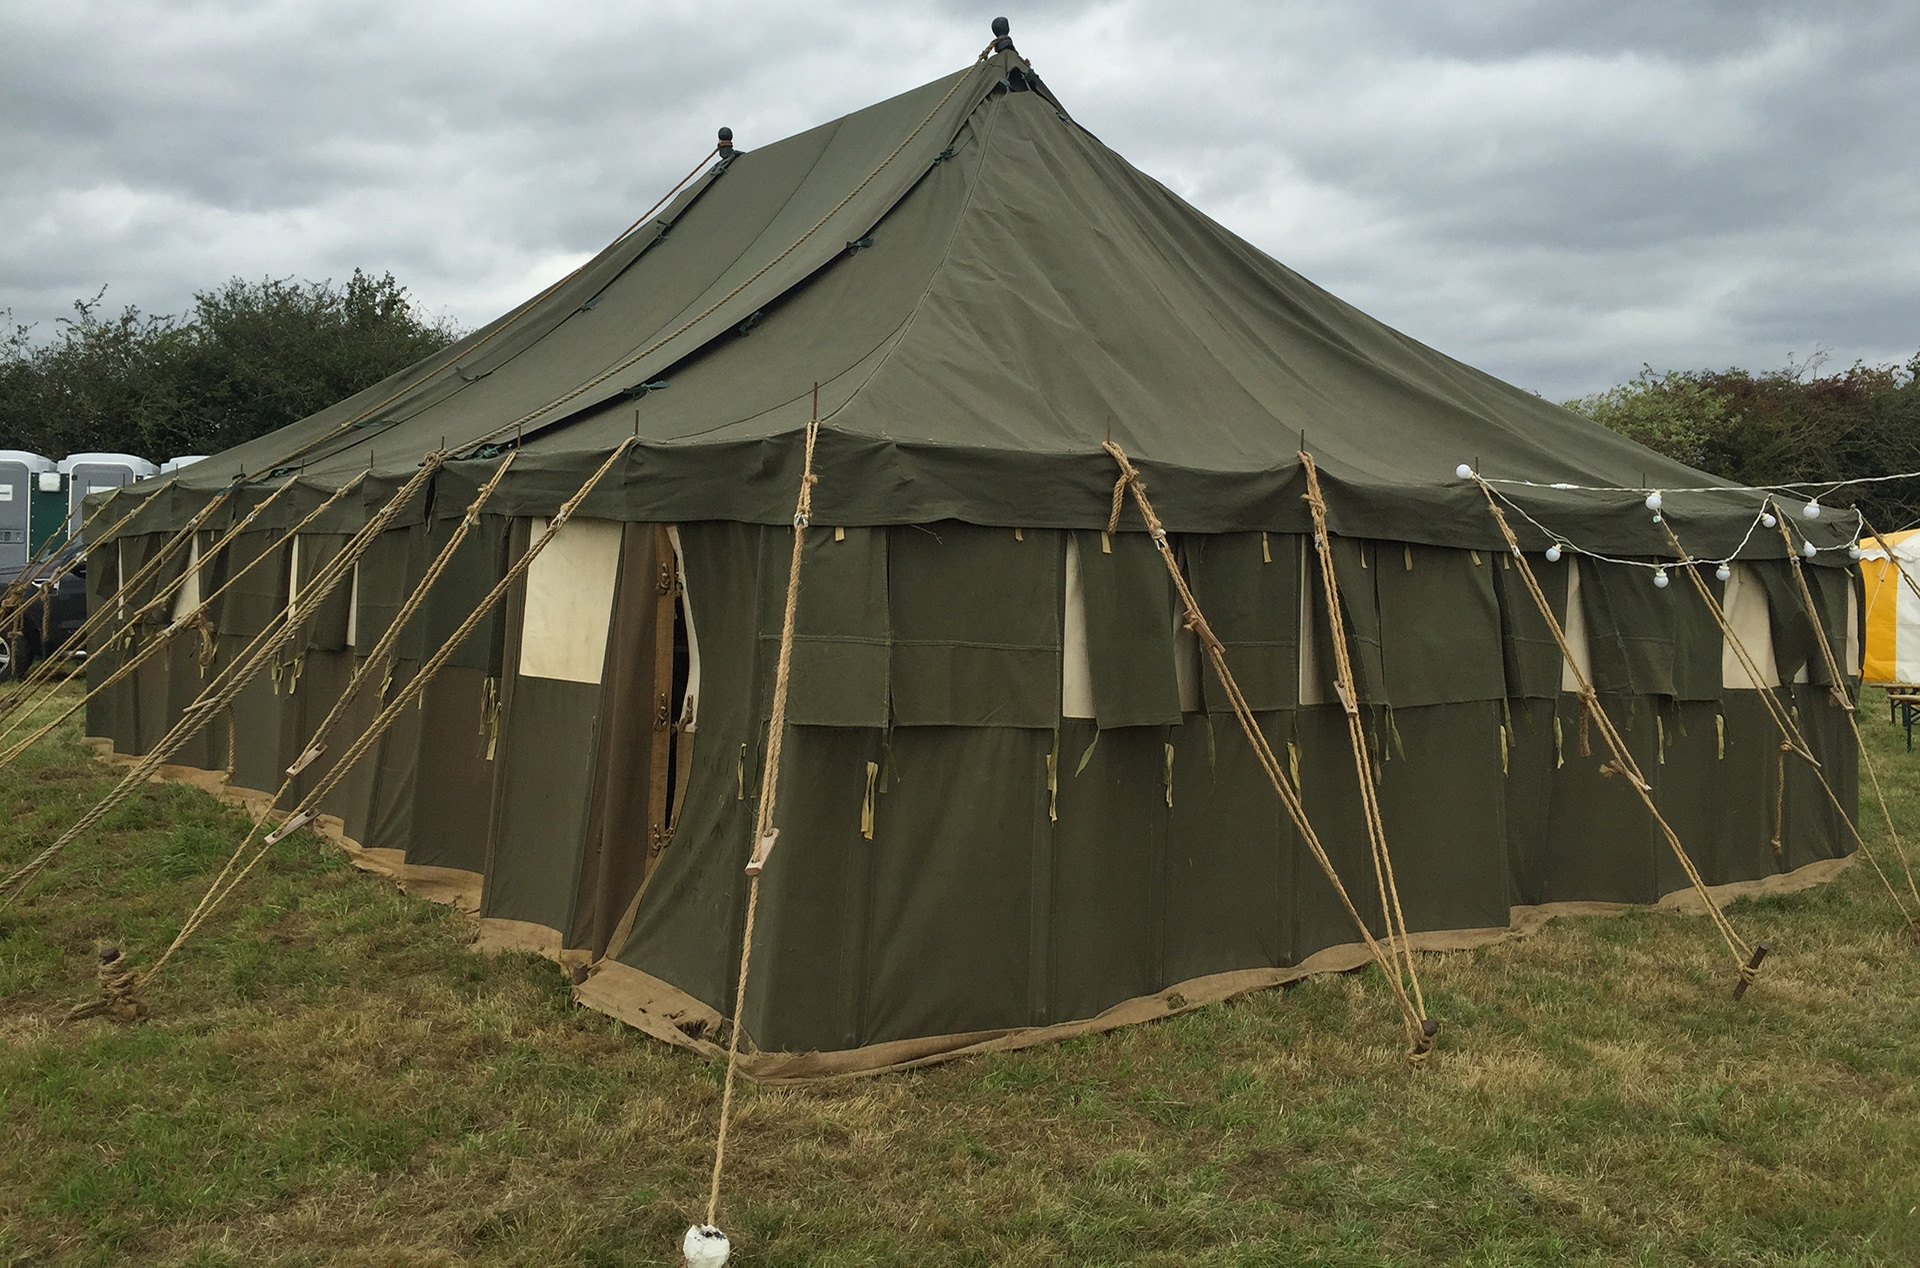 Our Captain Mainwaring Tent